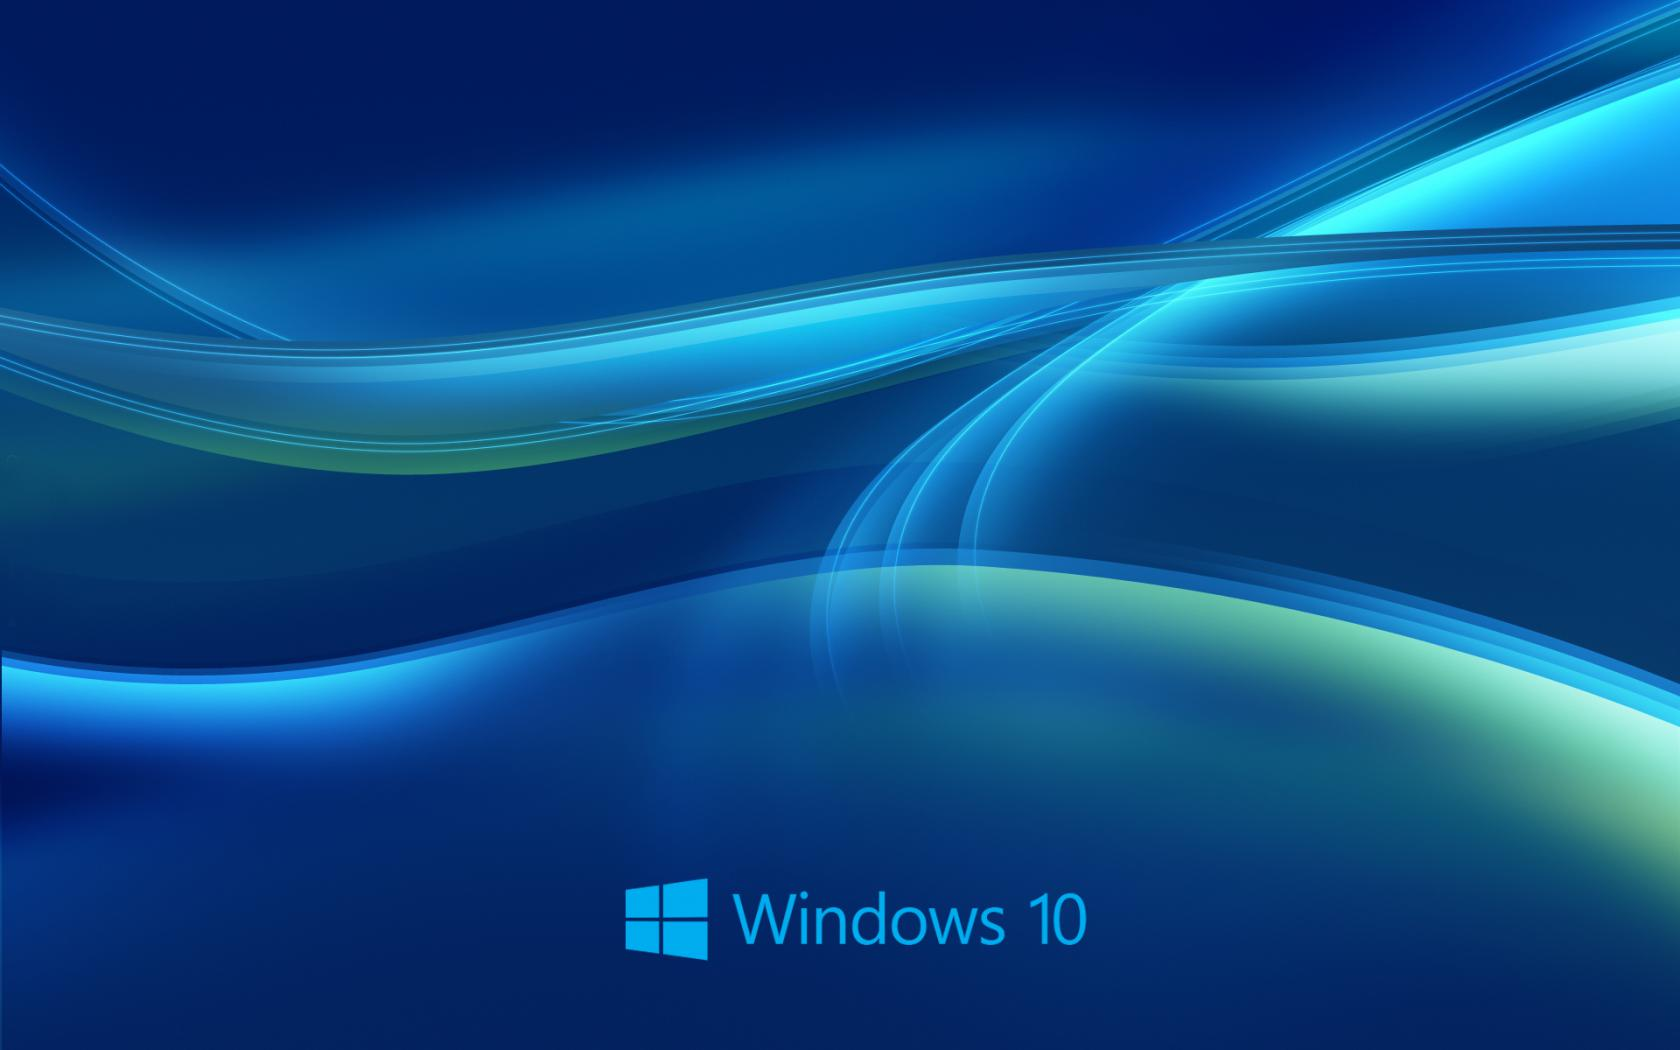 Windows 10 Wallpaper in Blue Abstract with New Logo   HD Wallpapers ...